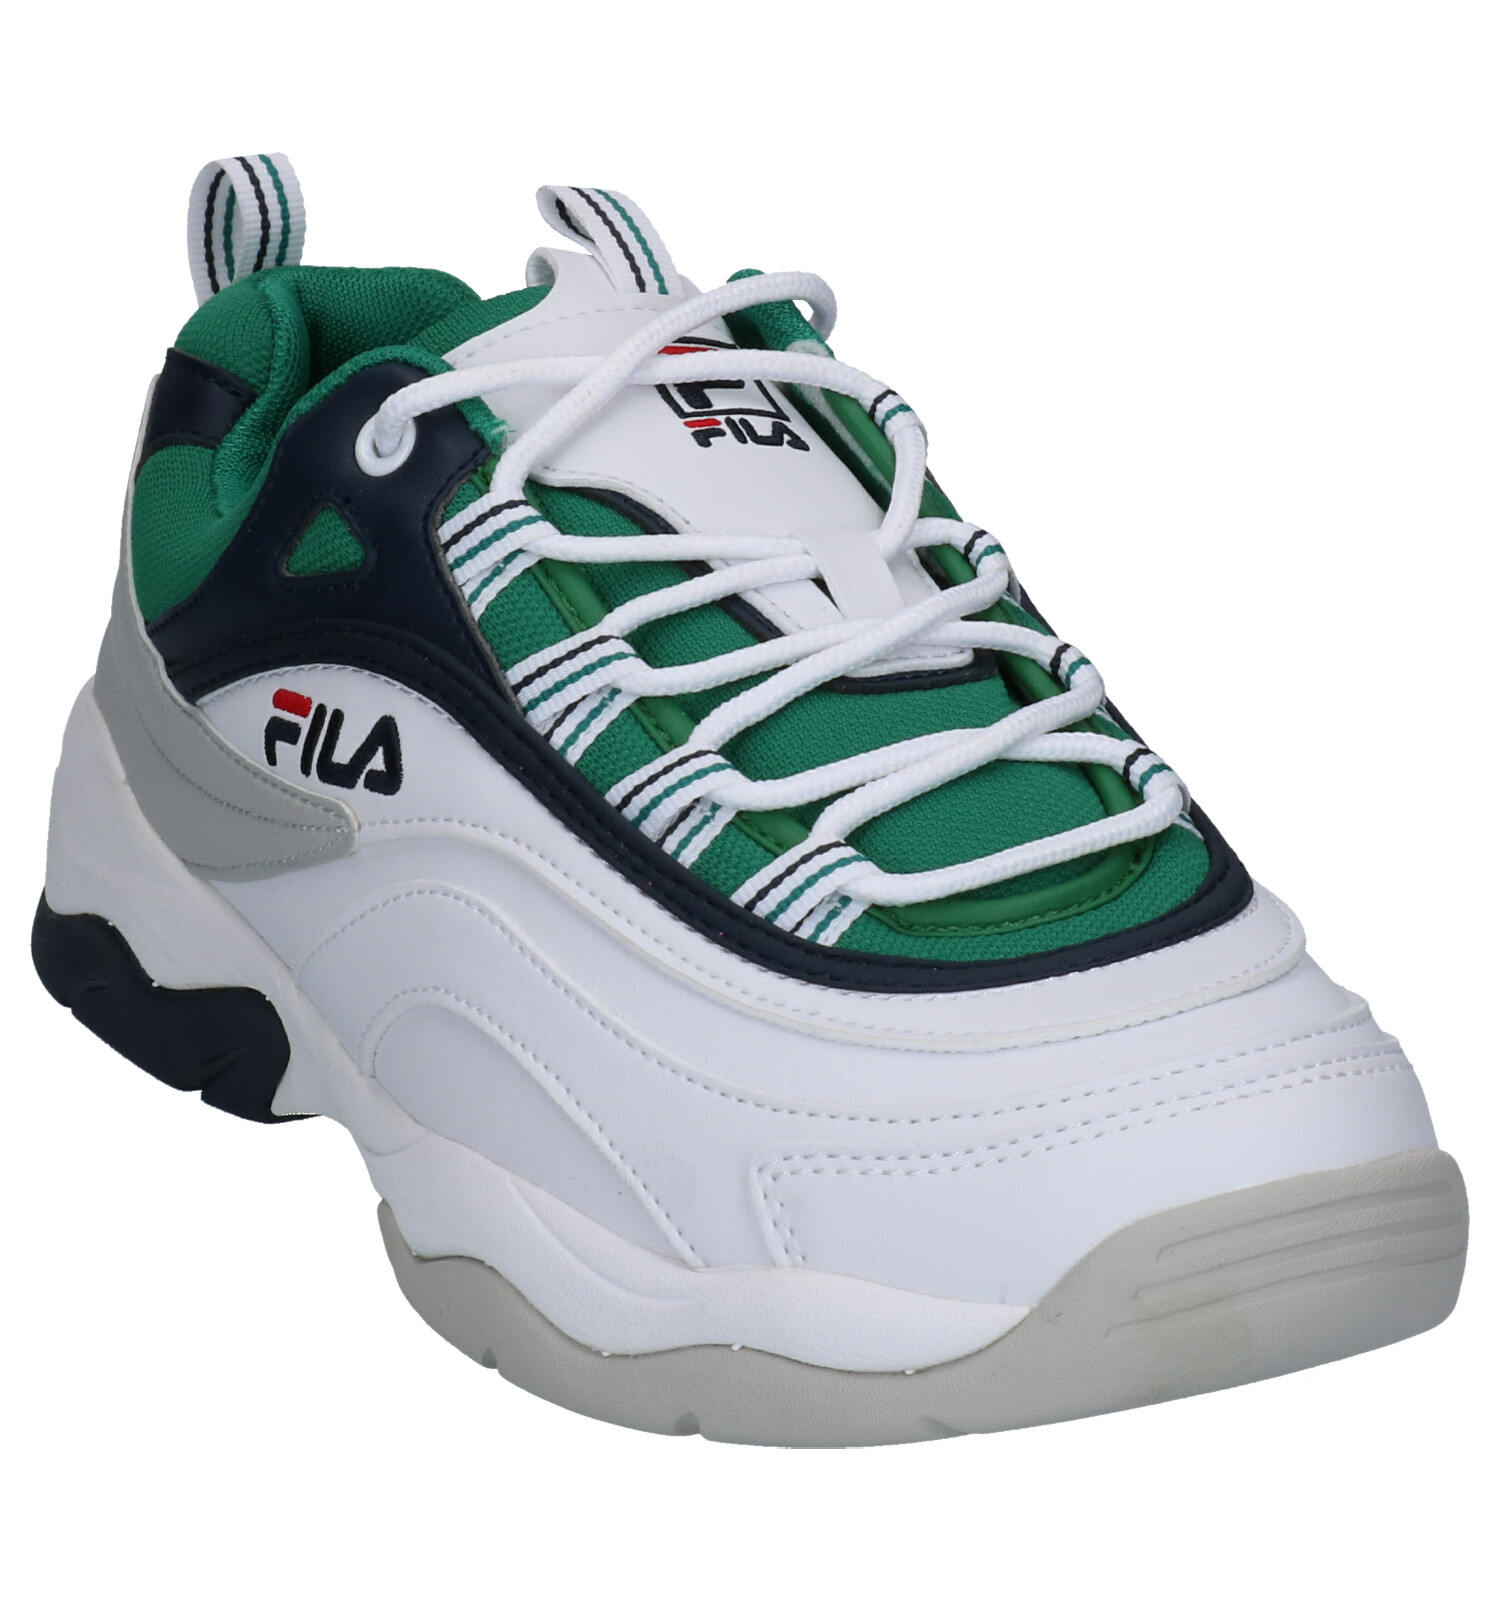 Witte Cb Fila Ray Witte Ray Cb Fila Cb Ray Sneakers Sneakers Witte Fila qUGVSMpz